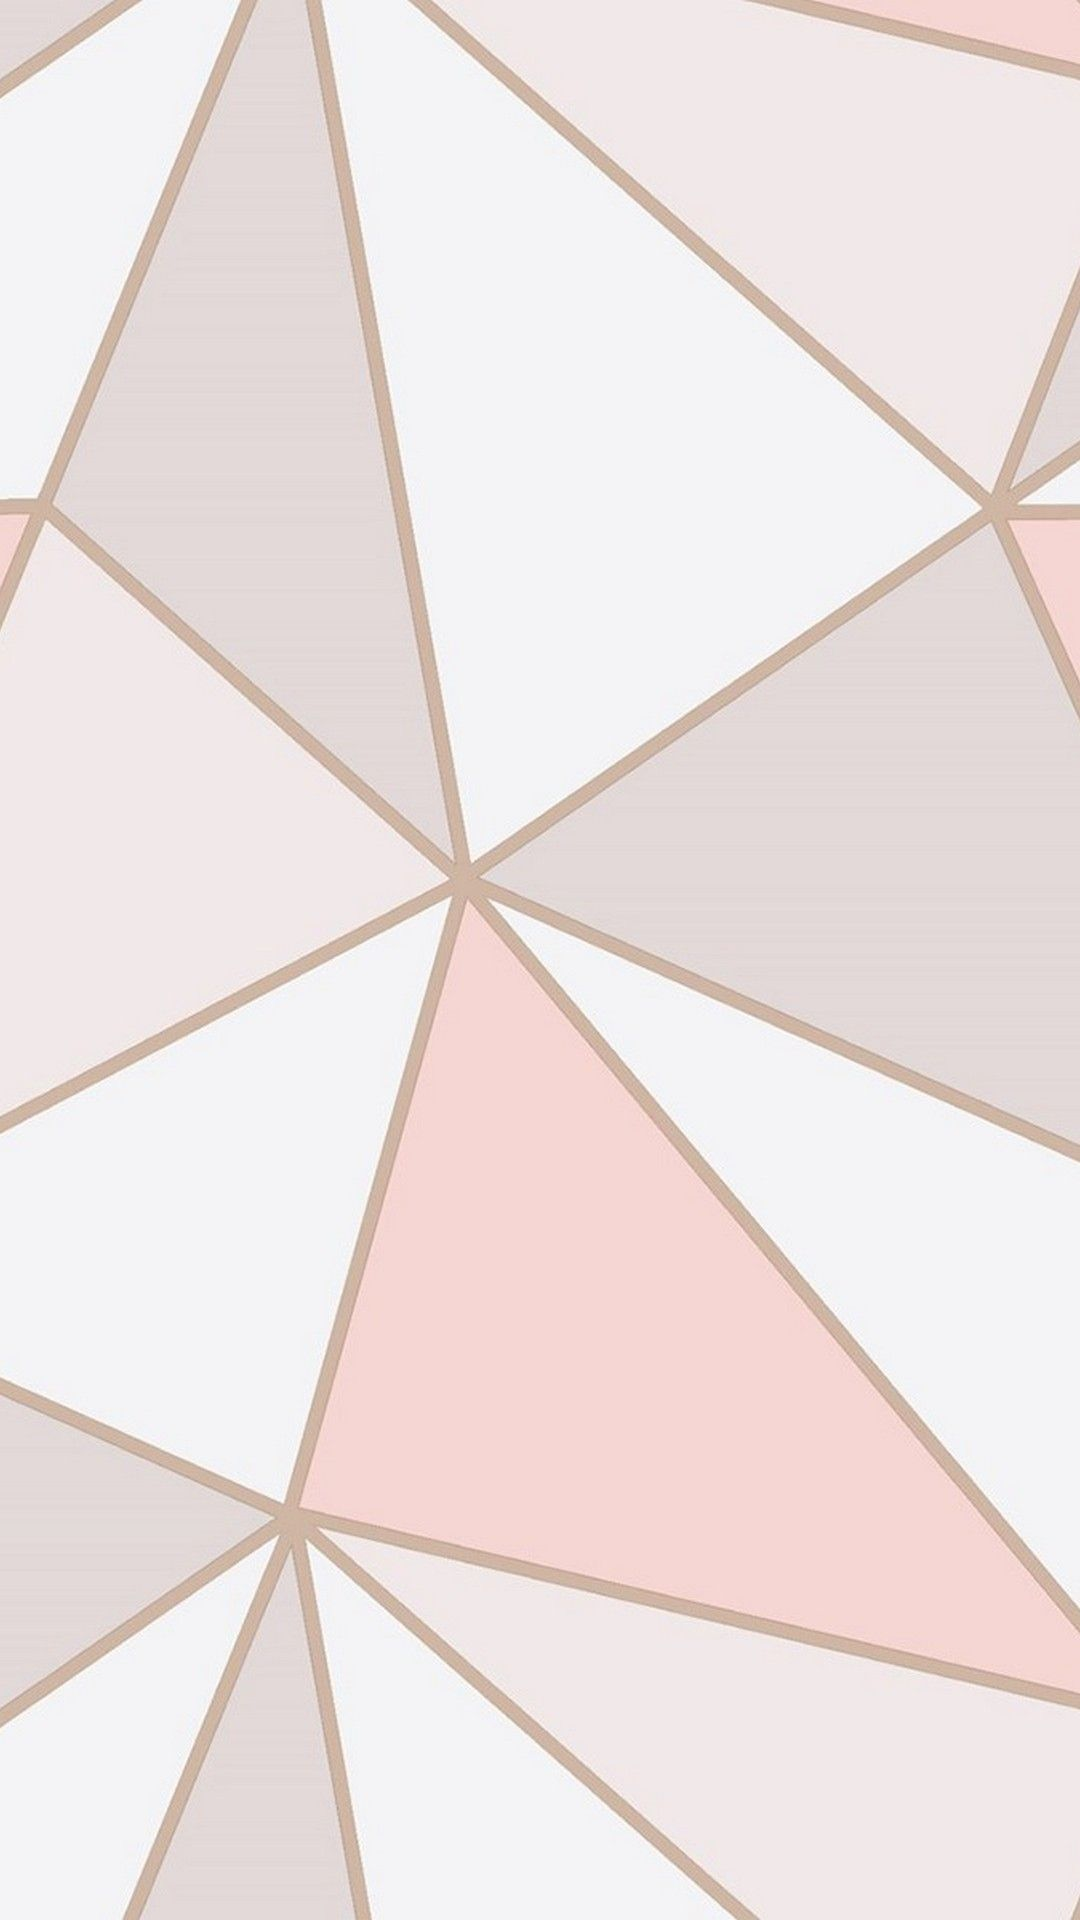 Marble White And Gold Picture In 2020 Grey Wallpaper Iphone Rose Gold Wallpaper Android Wallpaper Rose